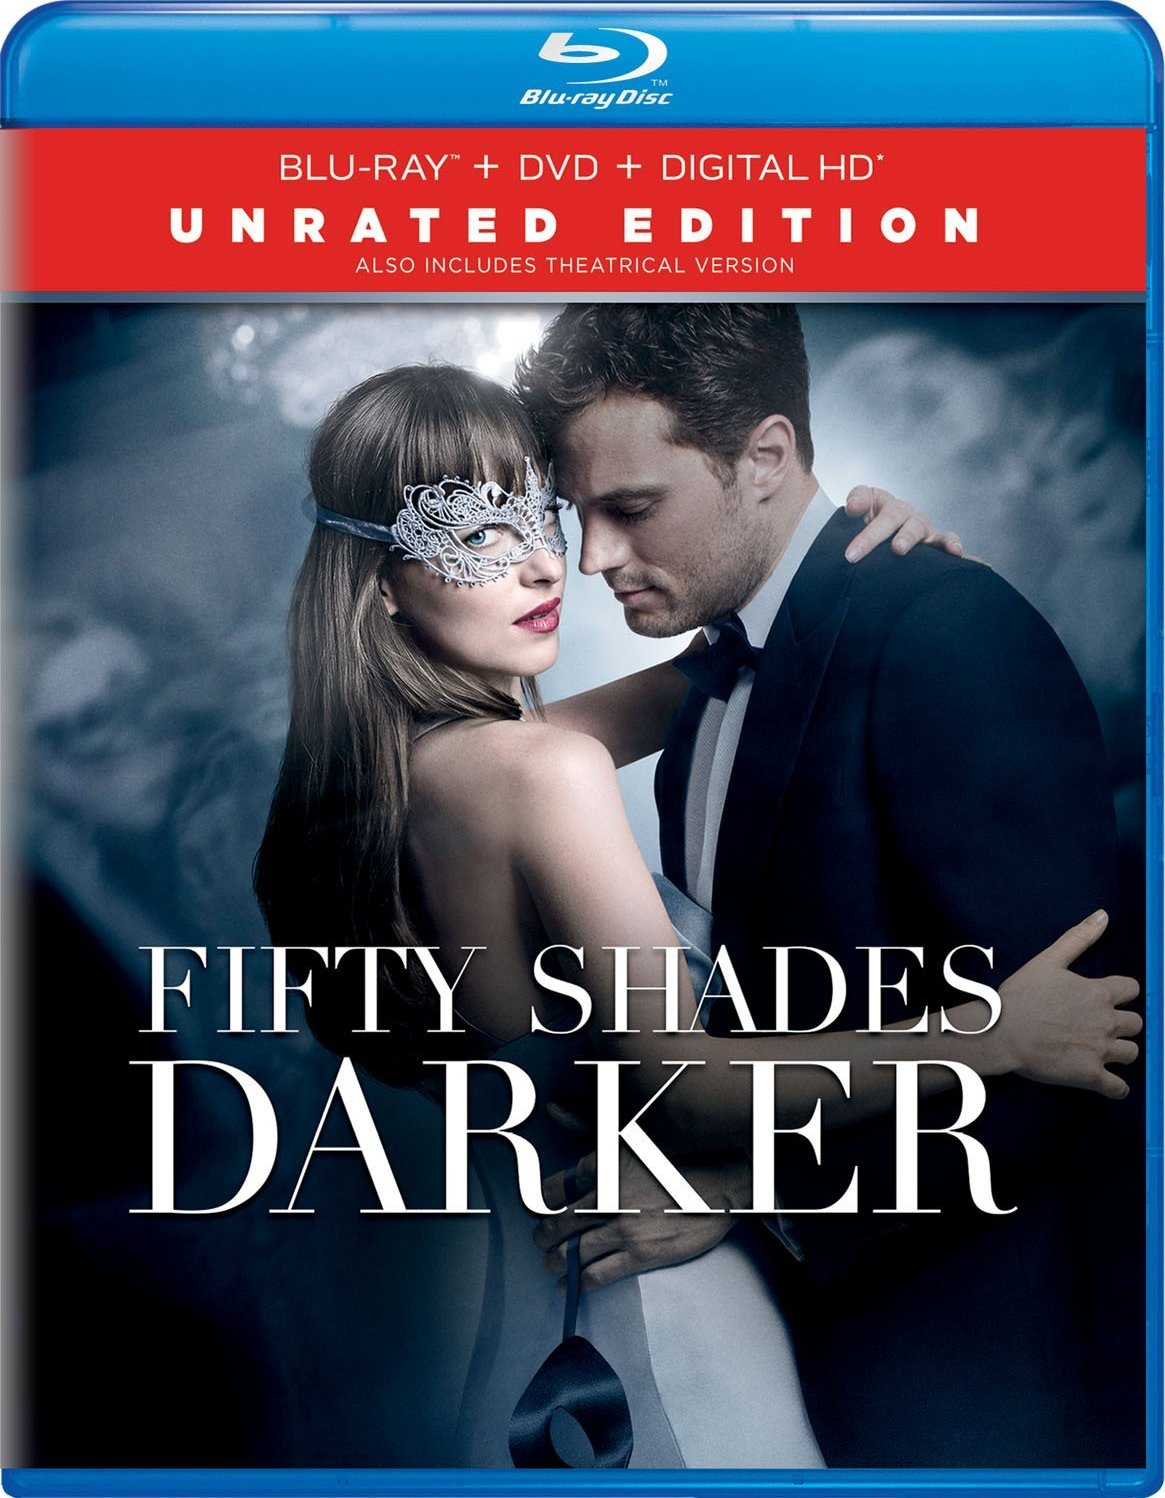 Fifty Shades Darker (2017) poster image